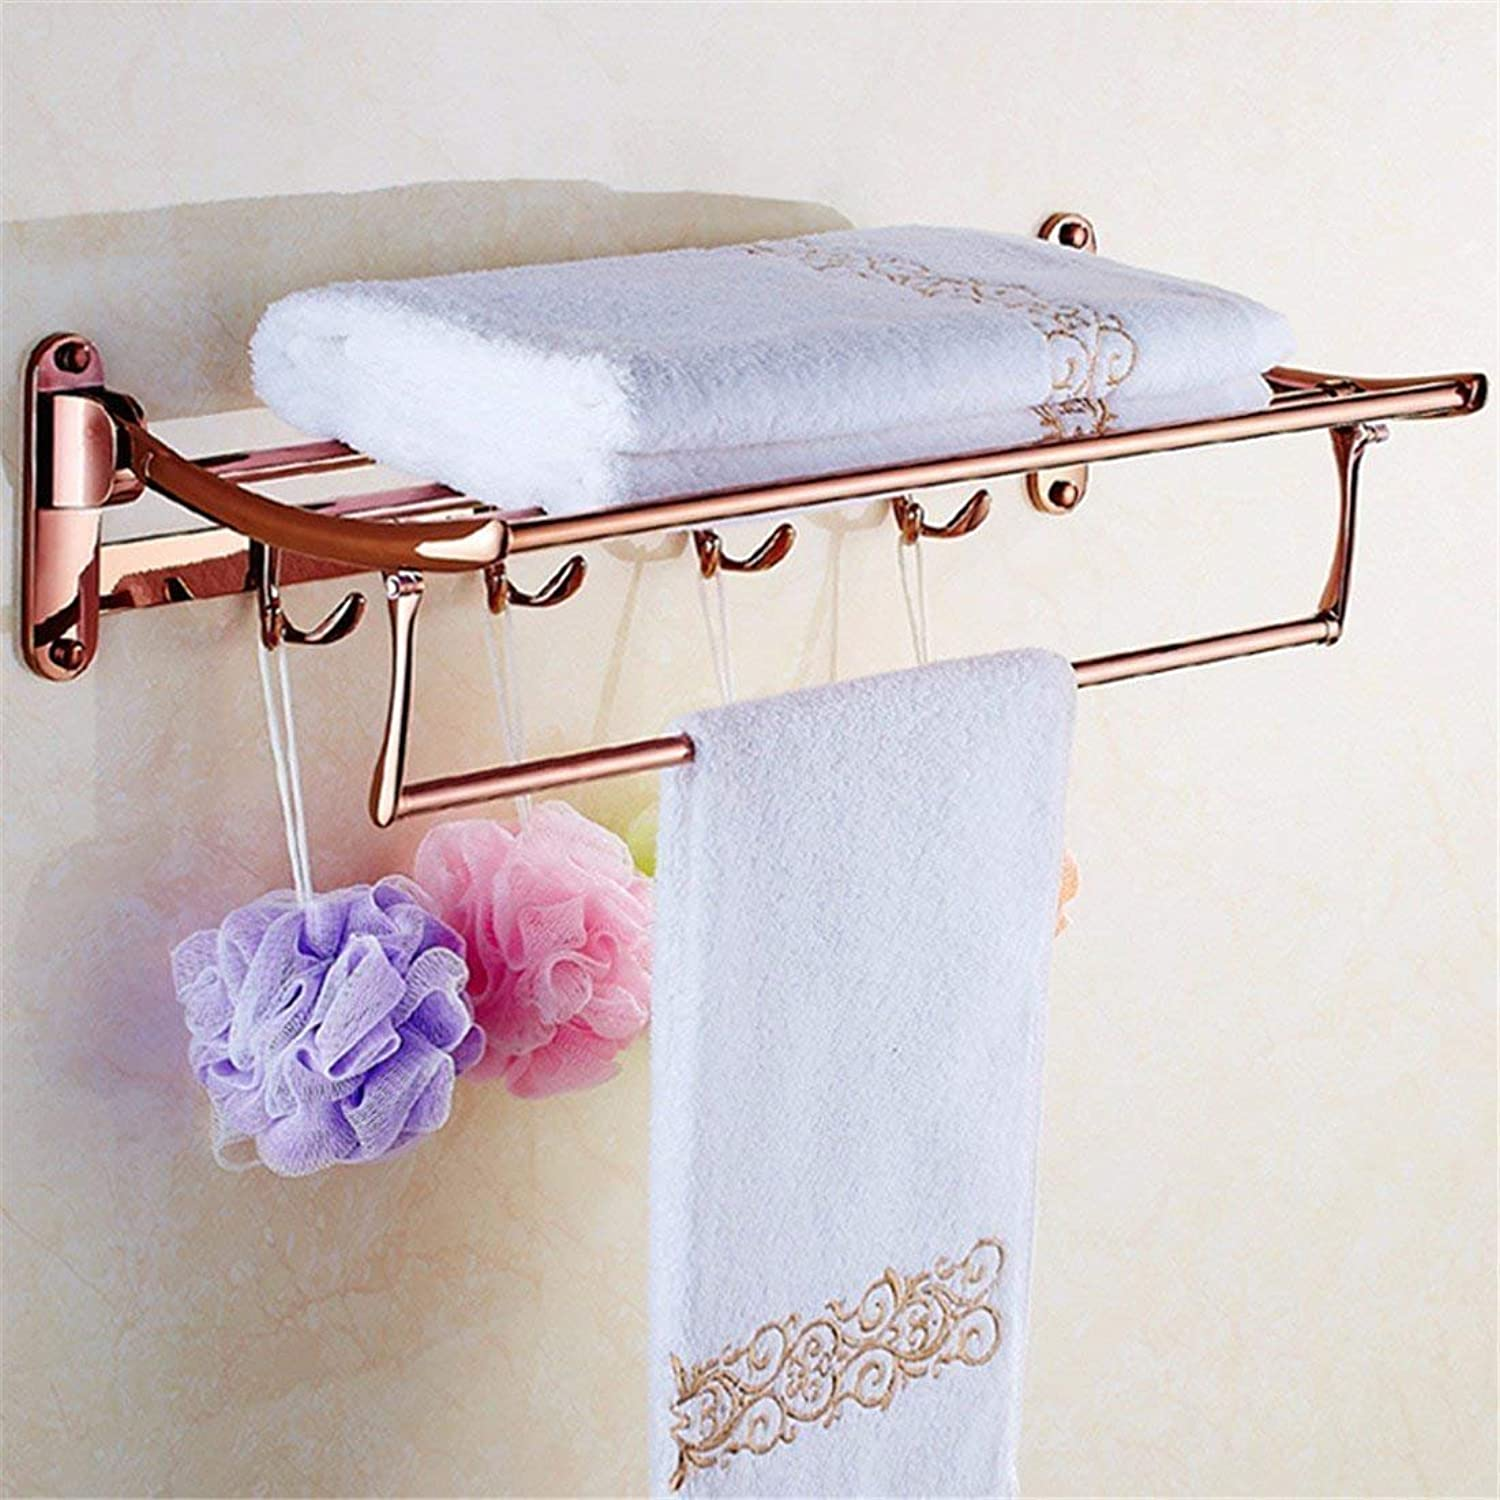 The Accessories for Bathroom in Copper-gold-Pink-Folding Door Dry-Towels Towels,B